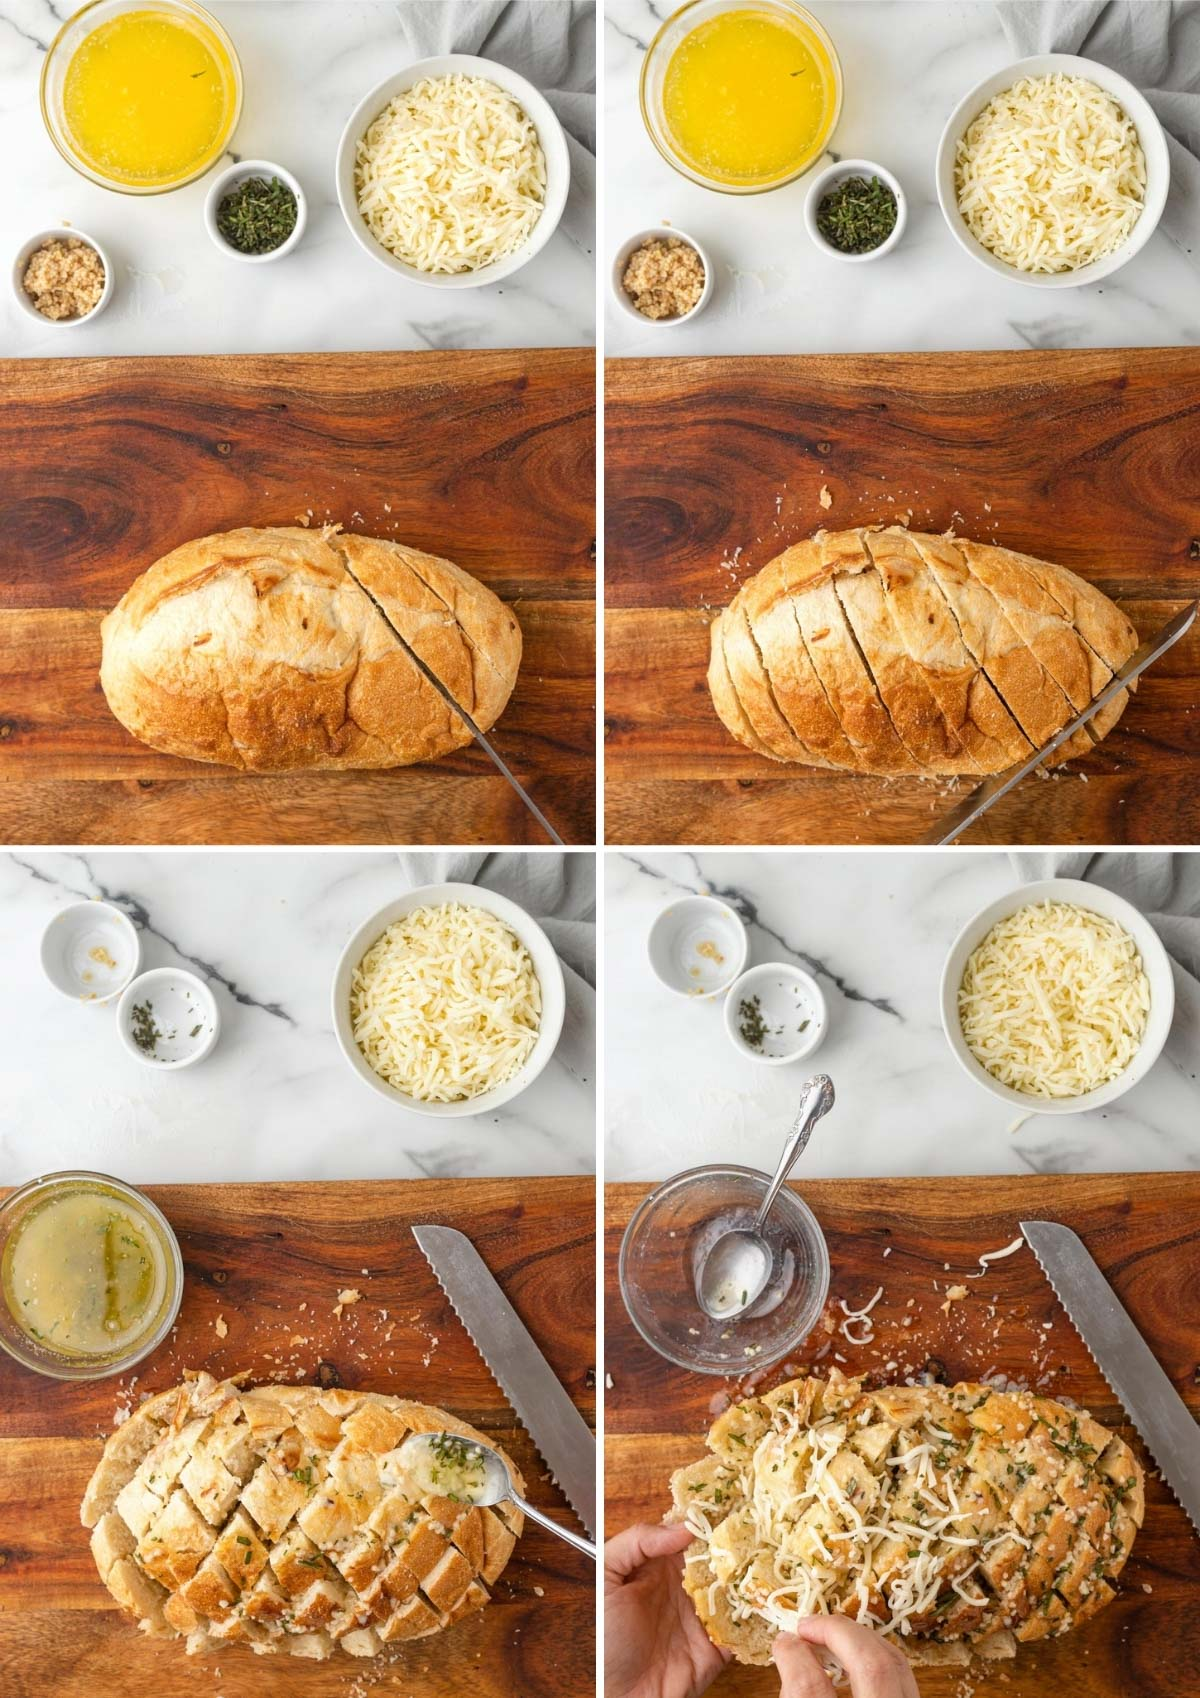 four photos showing the process of cutting and filling garlic pull apart bread with cheese